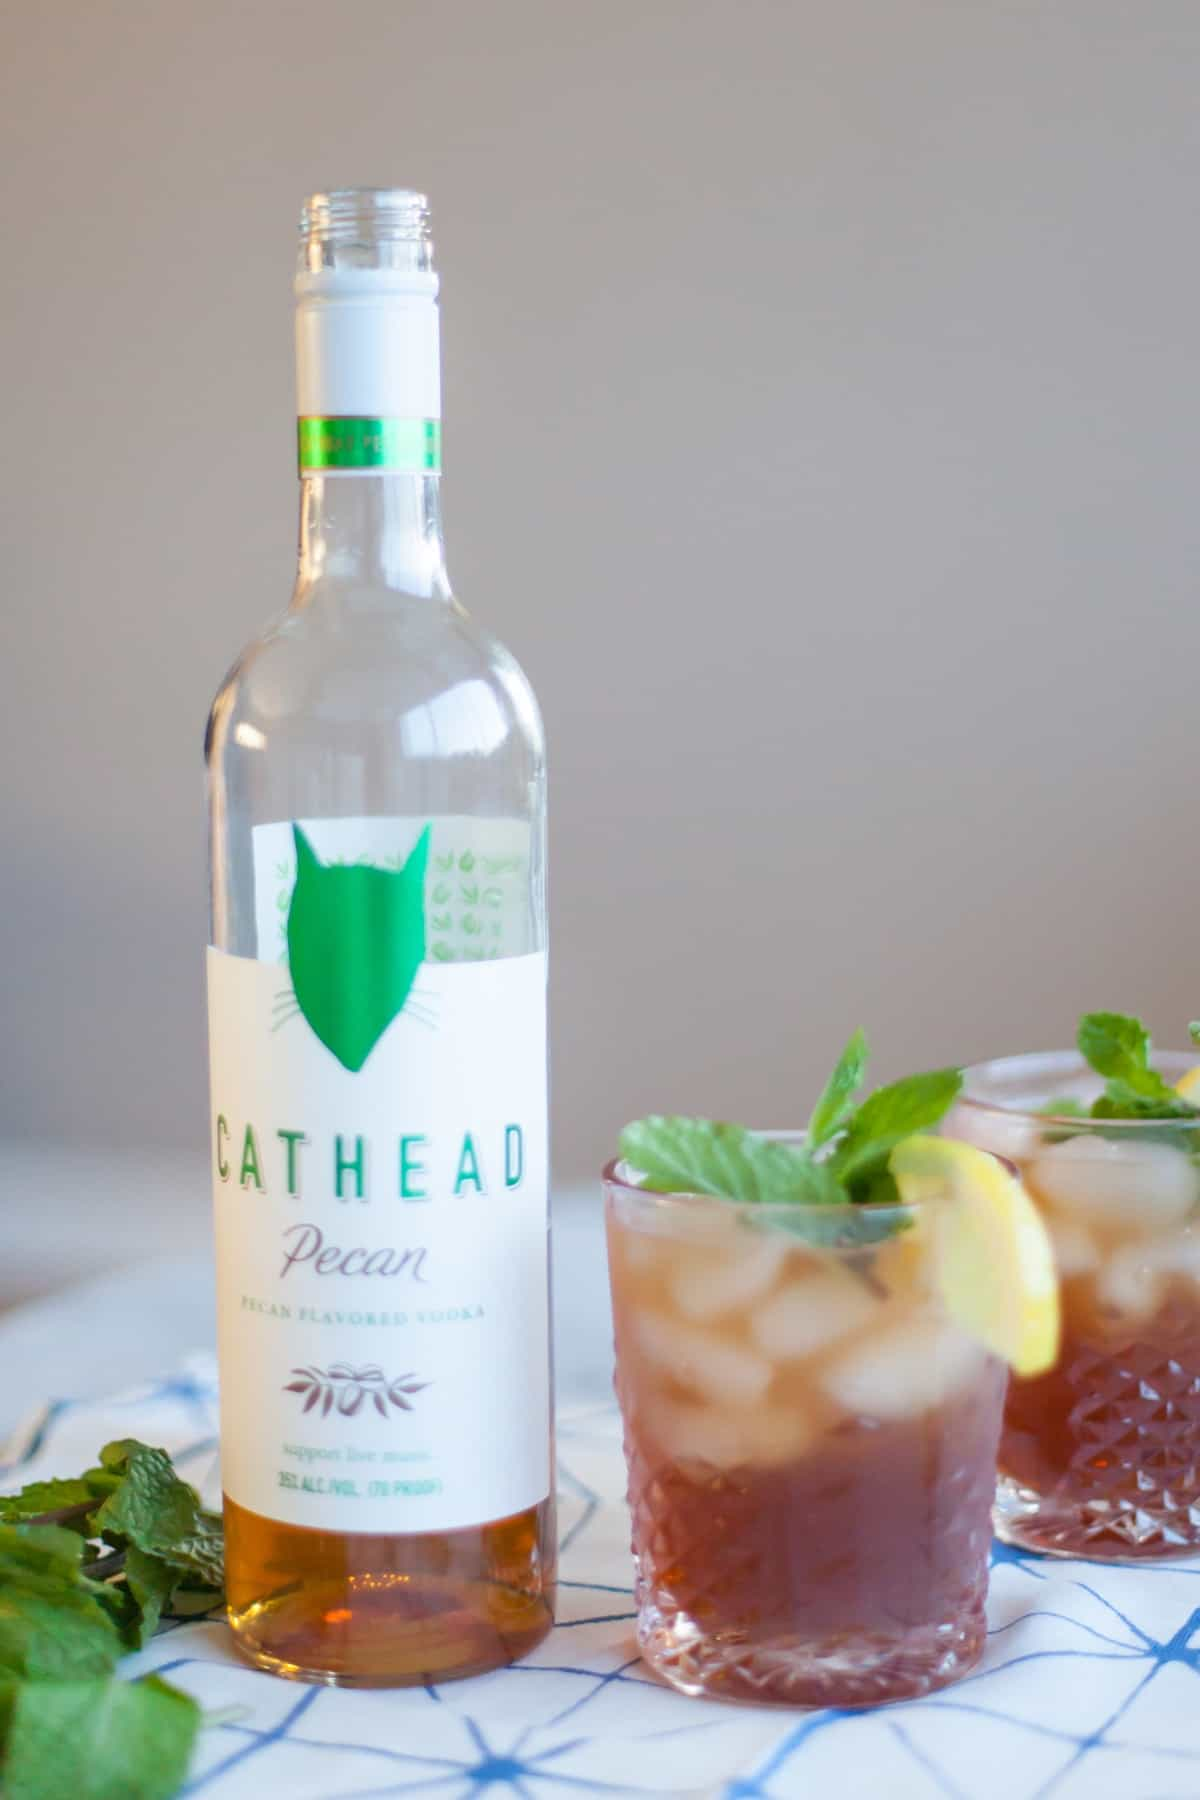 Pecan Spiked Iced Tea, summer cocktail ideas, - My Style Vita @mystylevita - 4